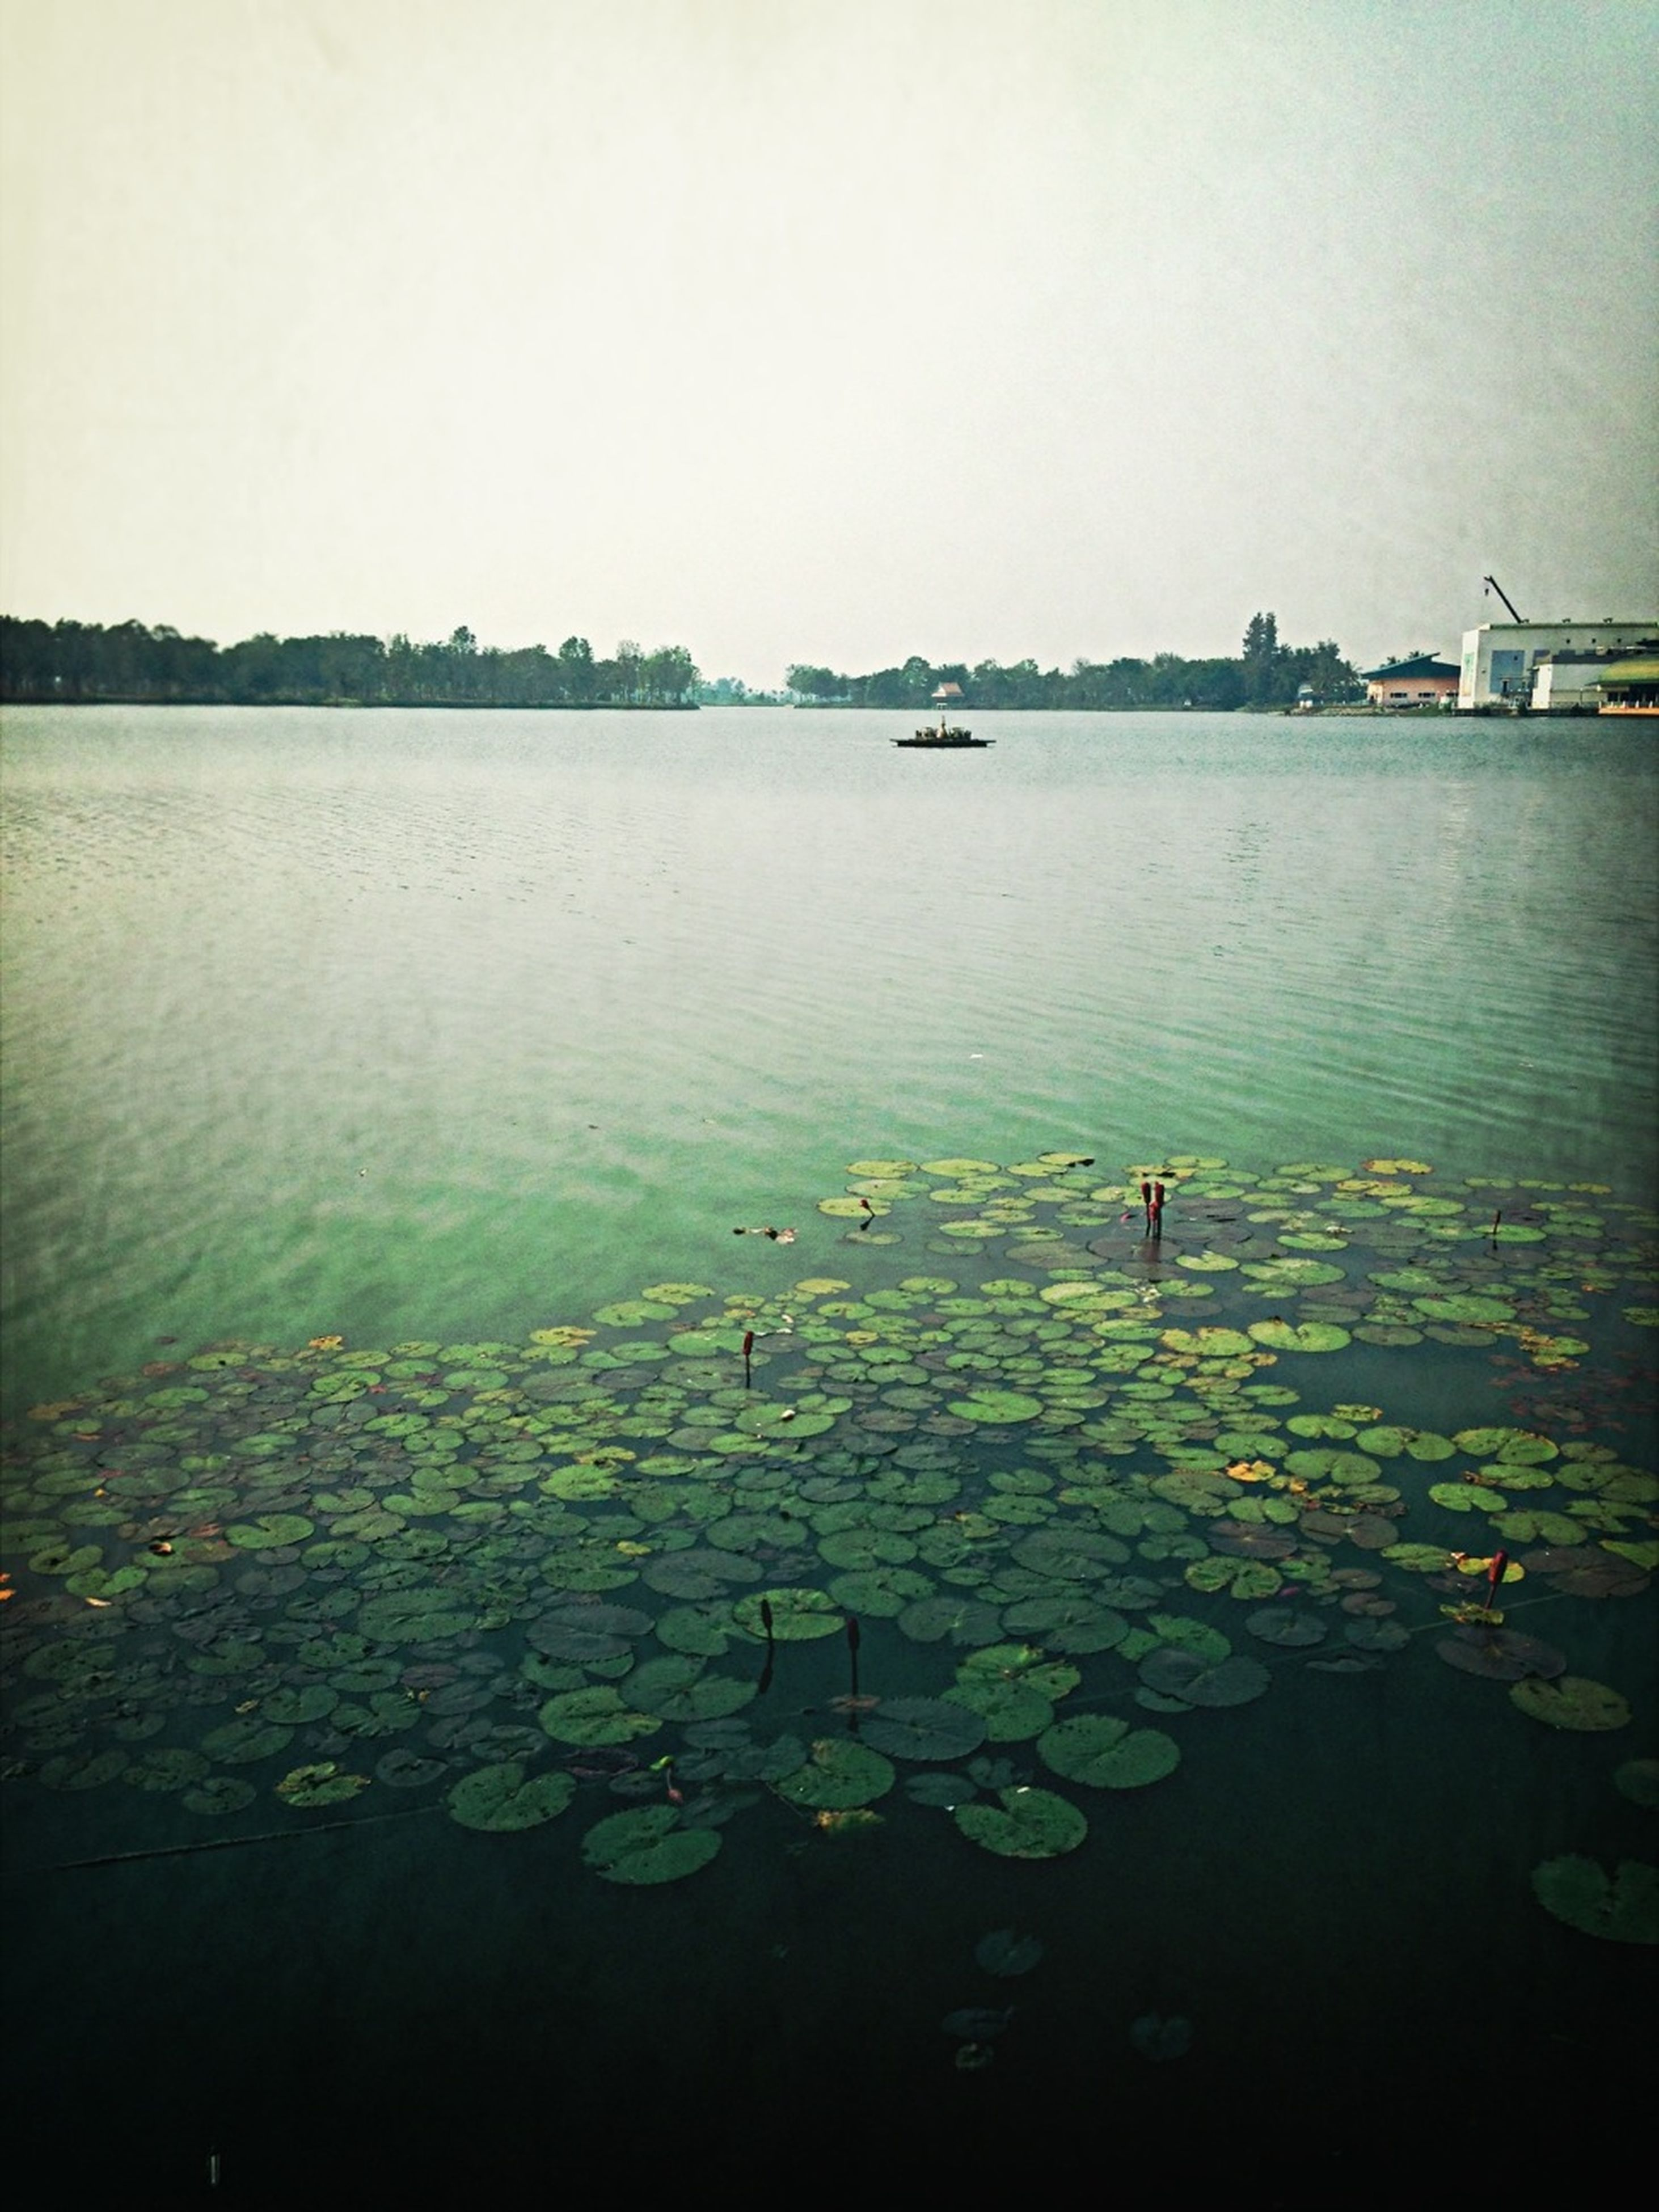 water, lake, clear sky, beauty in nature, tranquility, plant, reflection, nature, tranquil scene, copy space, growth, waterfront, scenics, flower, no people, day, river, outdoors, sea, calm